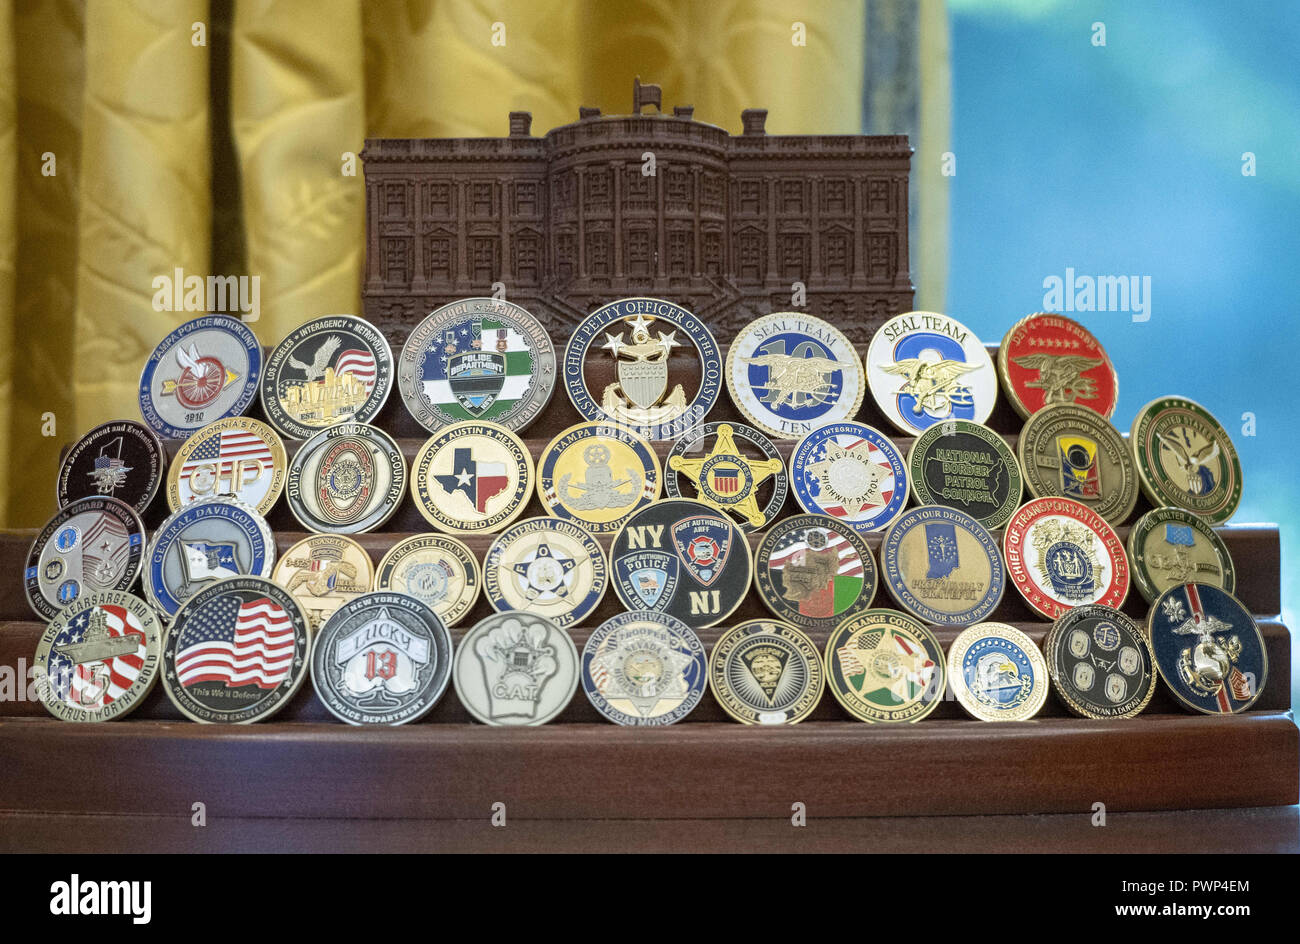 Challenge Coins Stock Photos & Challenge Coins Stock Images - Alamy